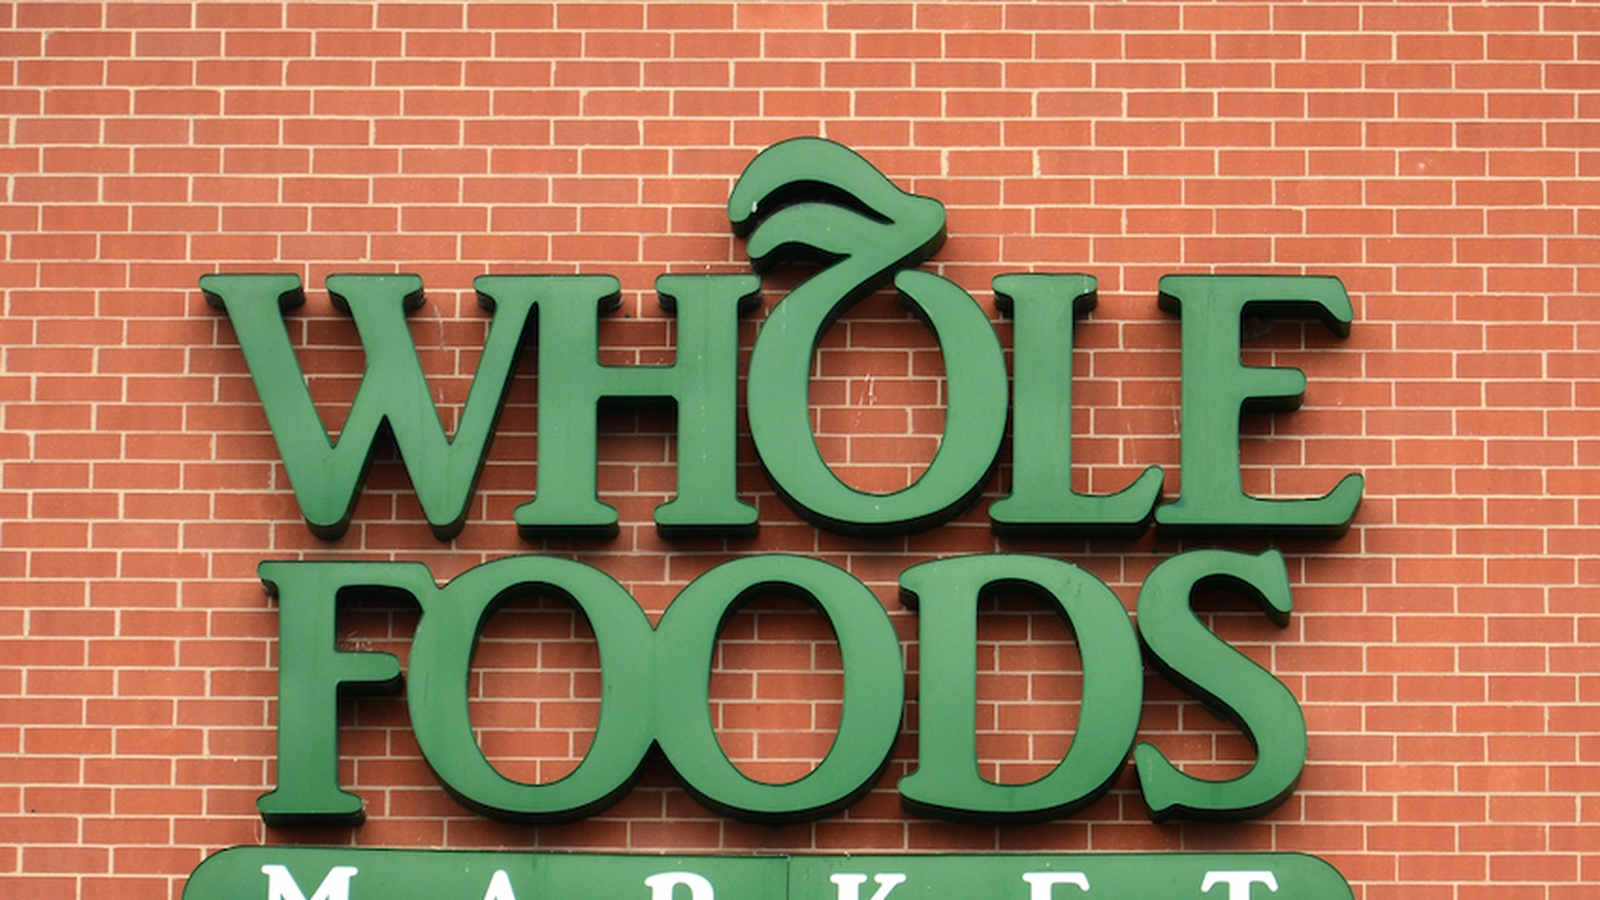 14 Whole Foods Products We Love